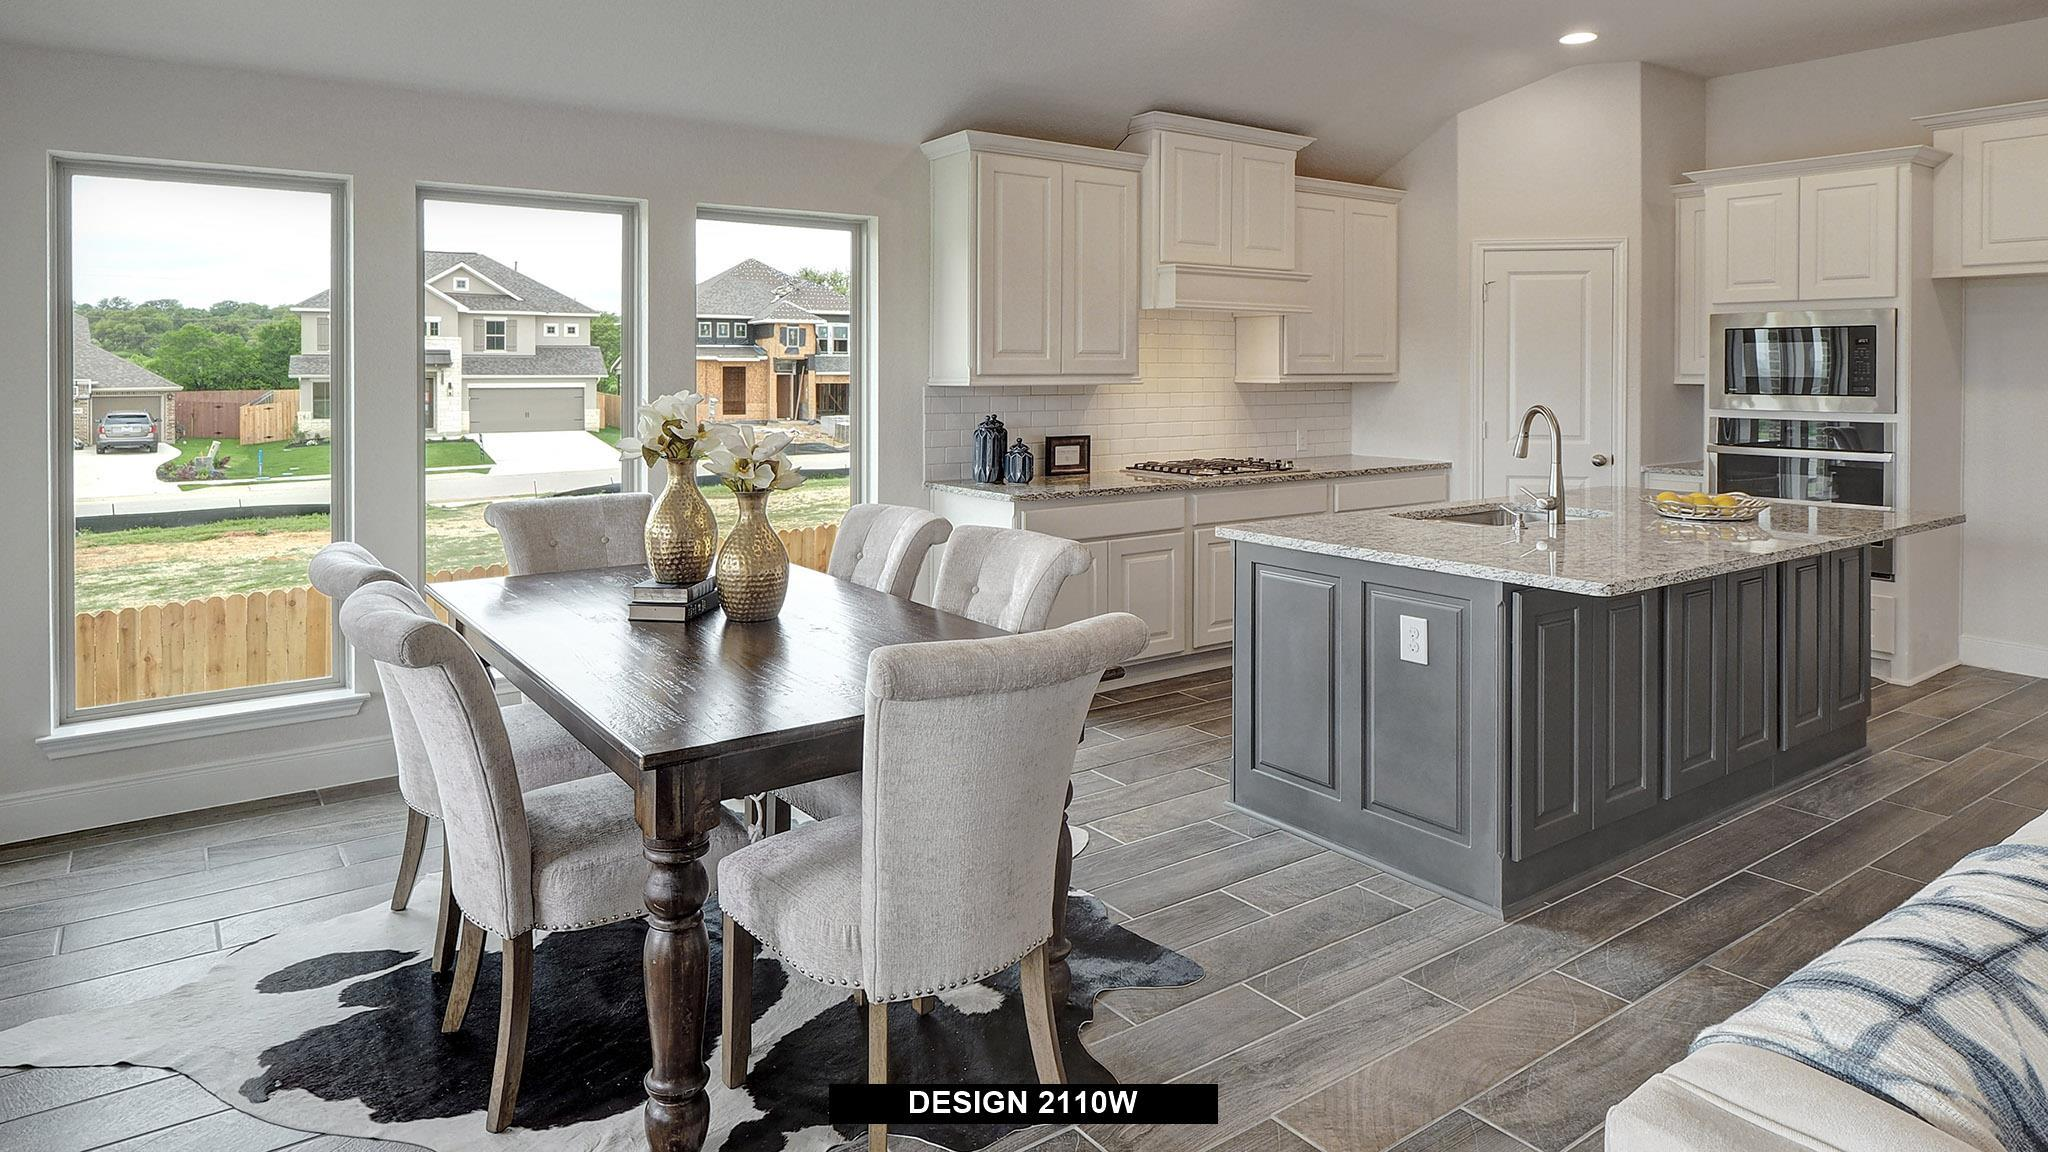 Kitchen featured in the 2110W By Perry Homes in Dallas, TX